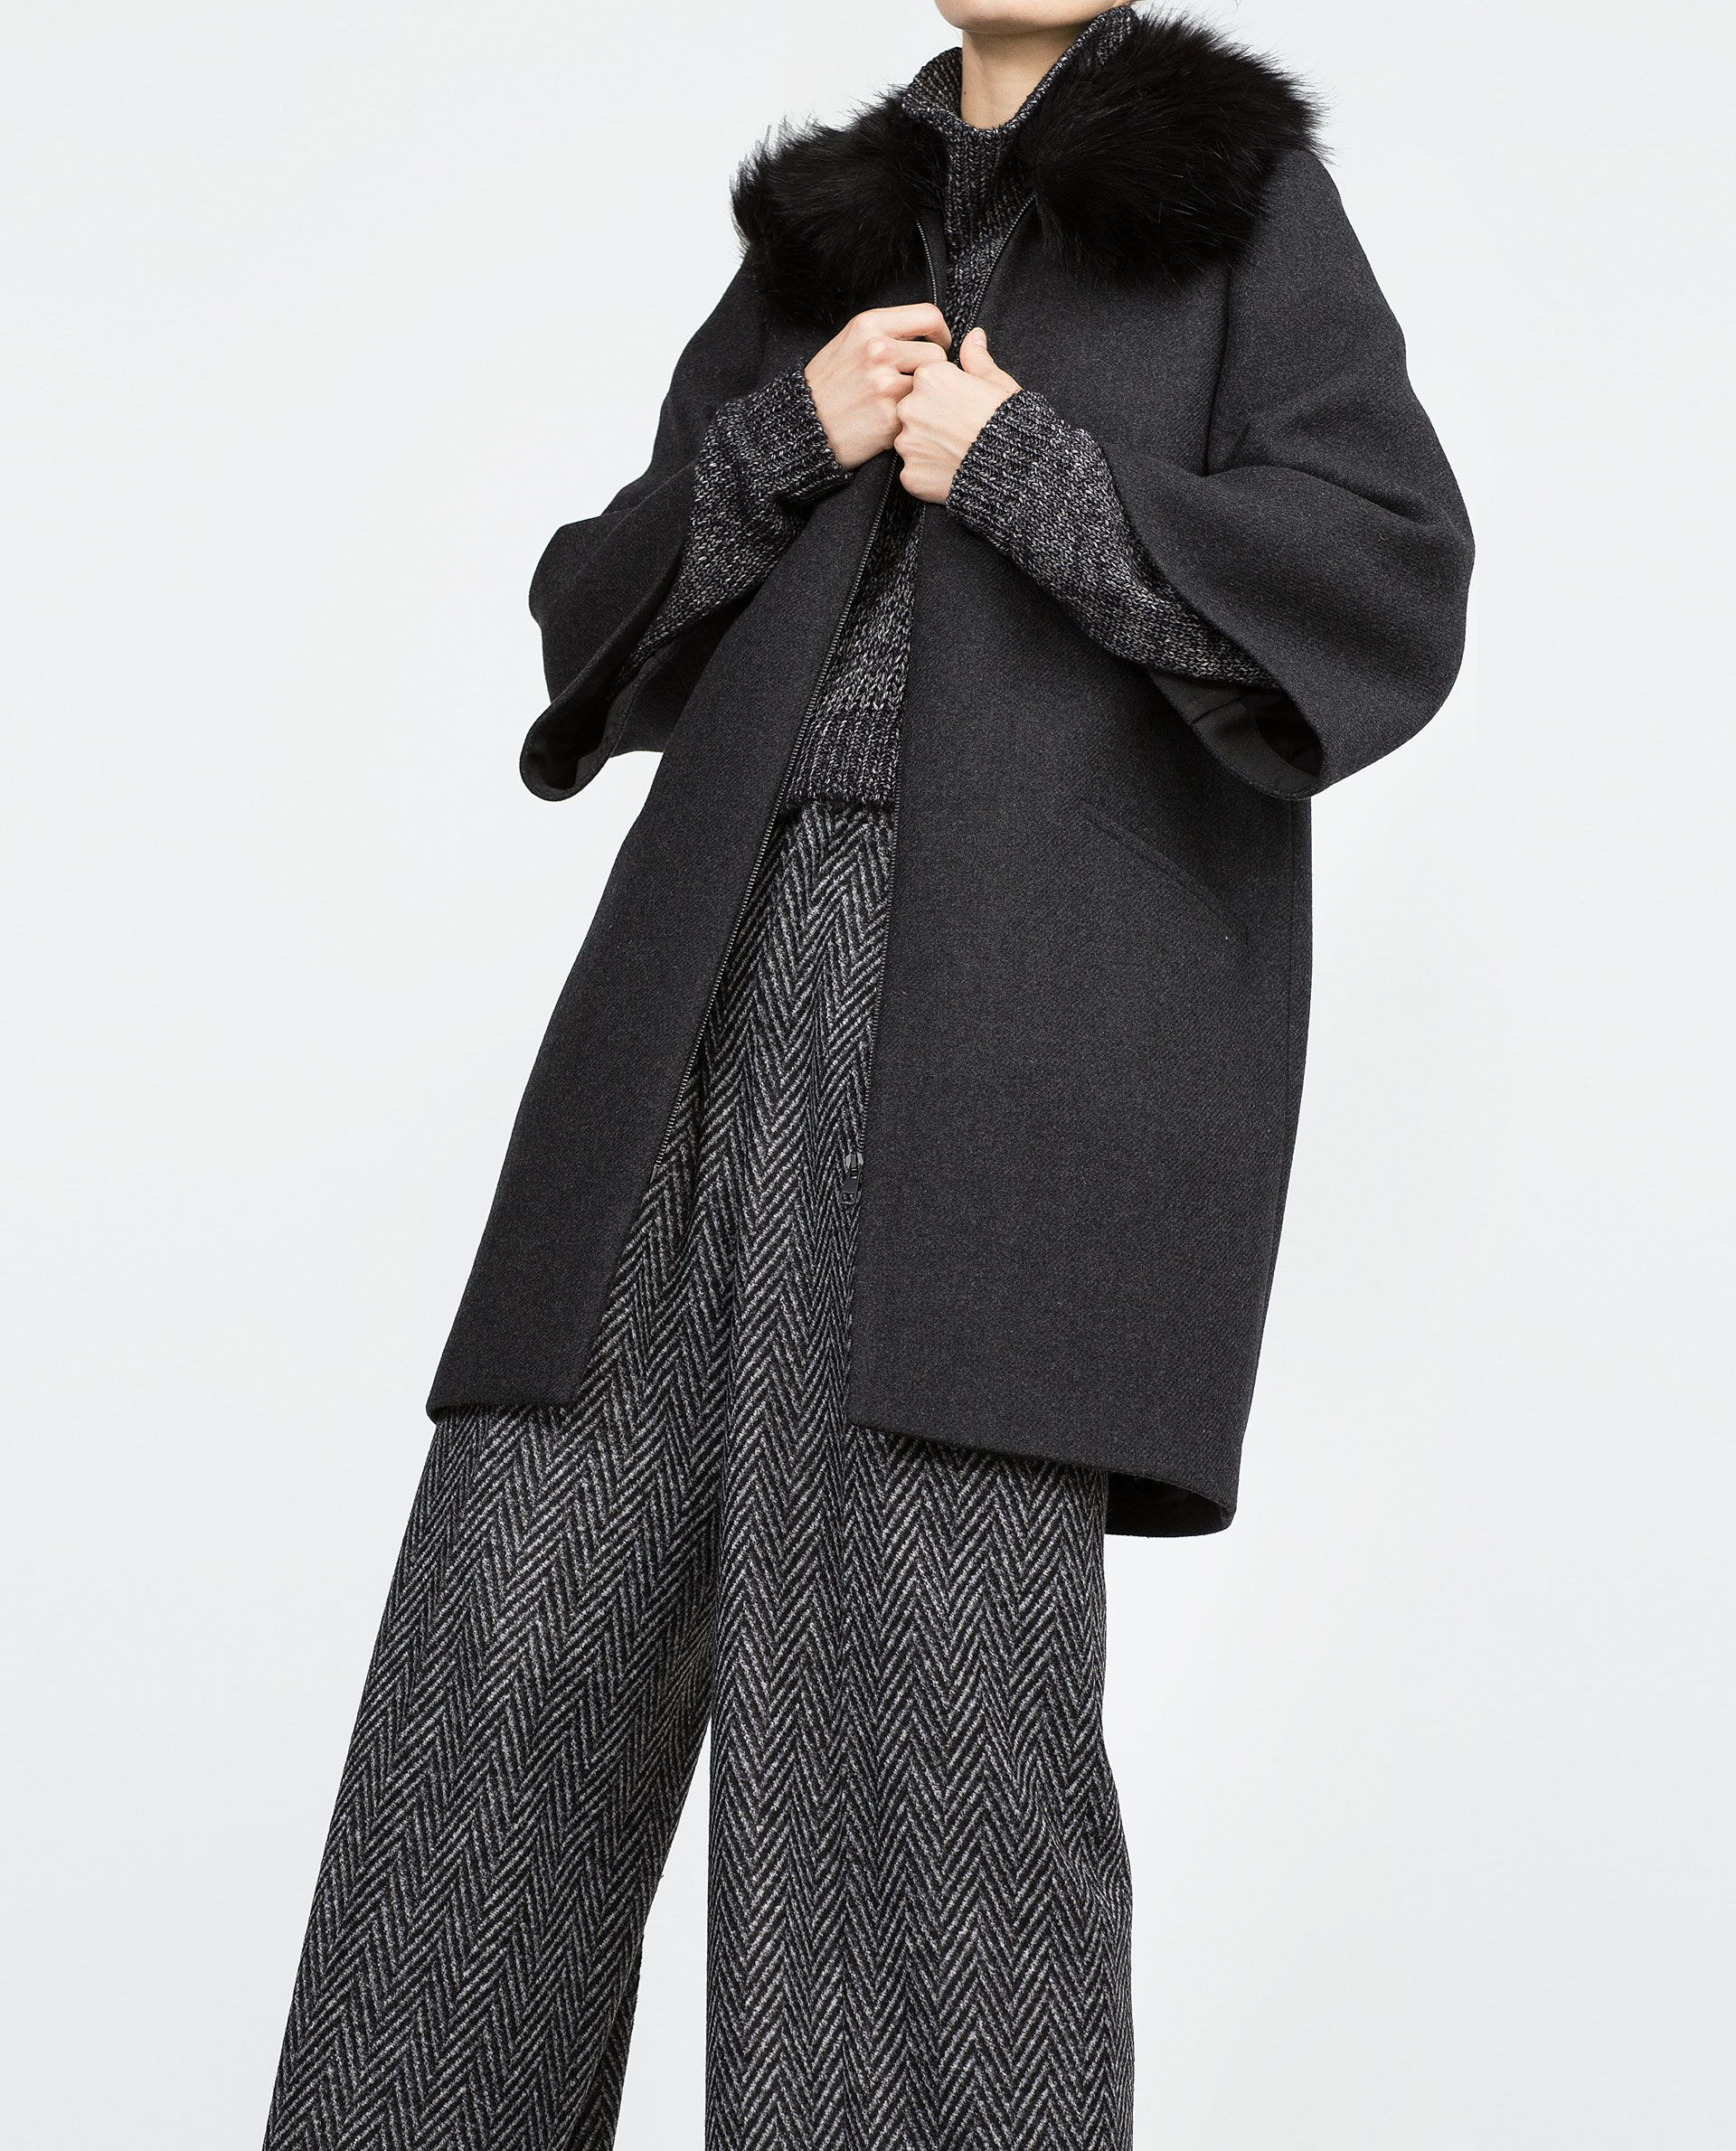 COAT WITH FURRY COLLAR - Coats - Outerwear - WOMAN | ZARA Georgia